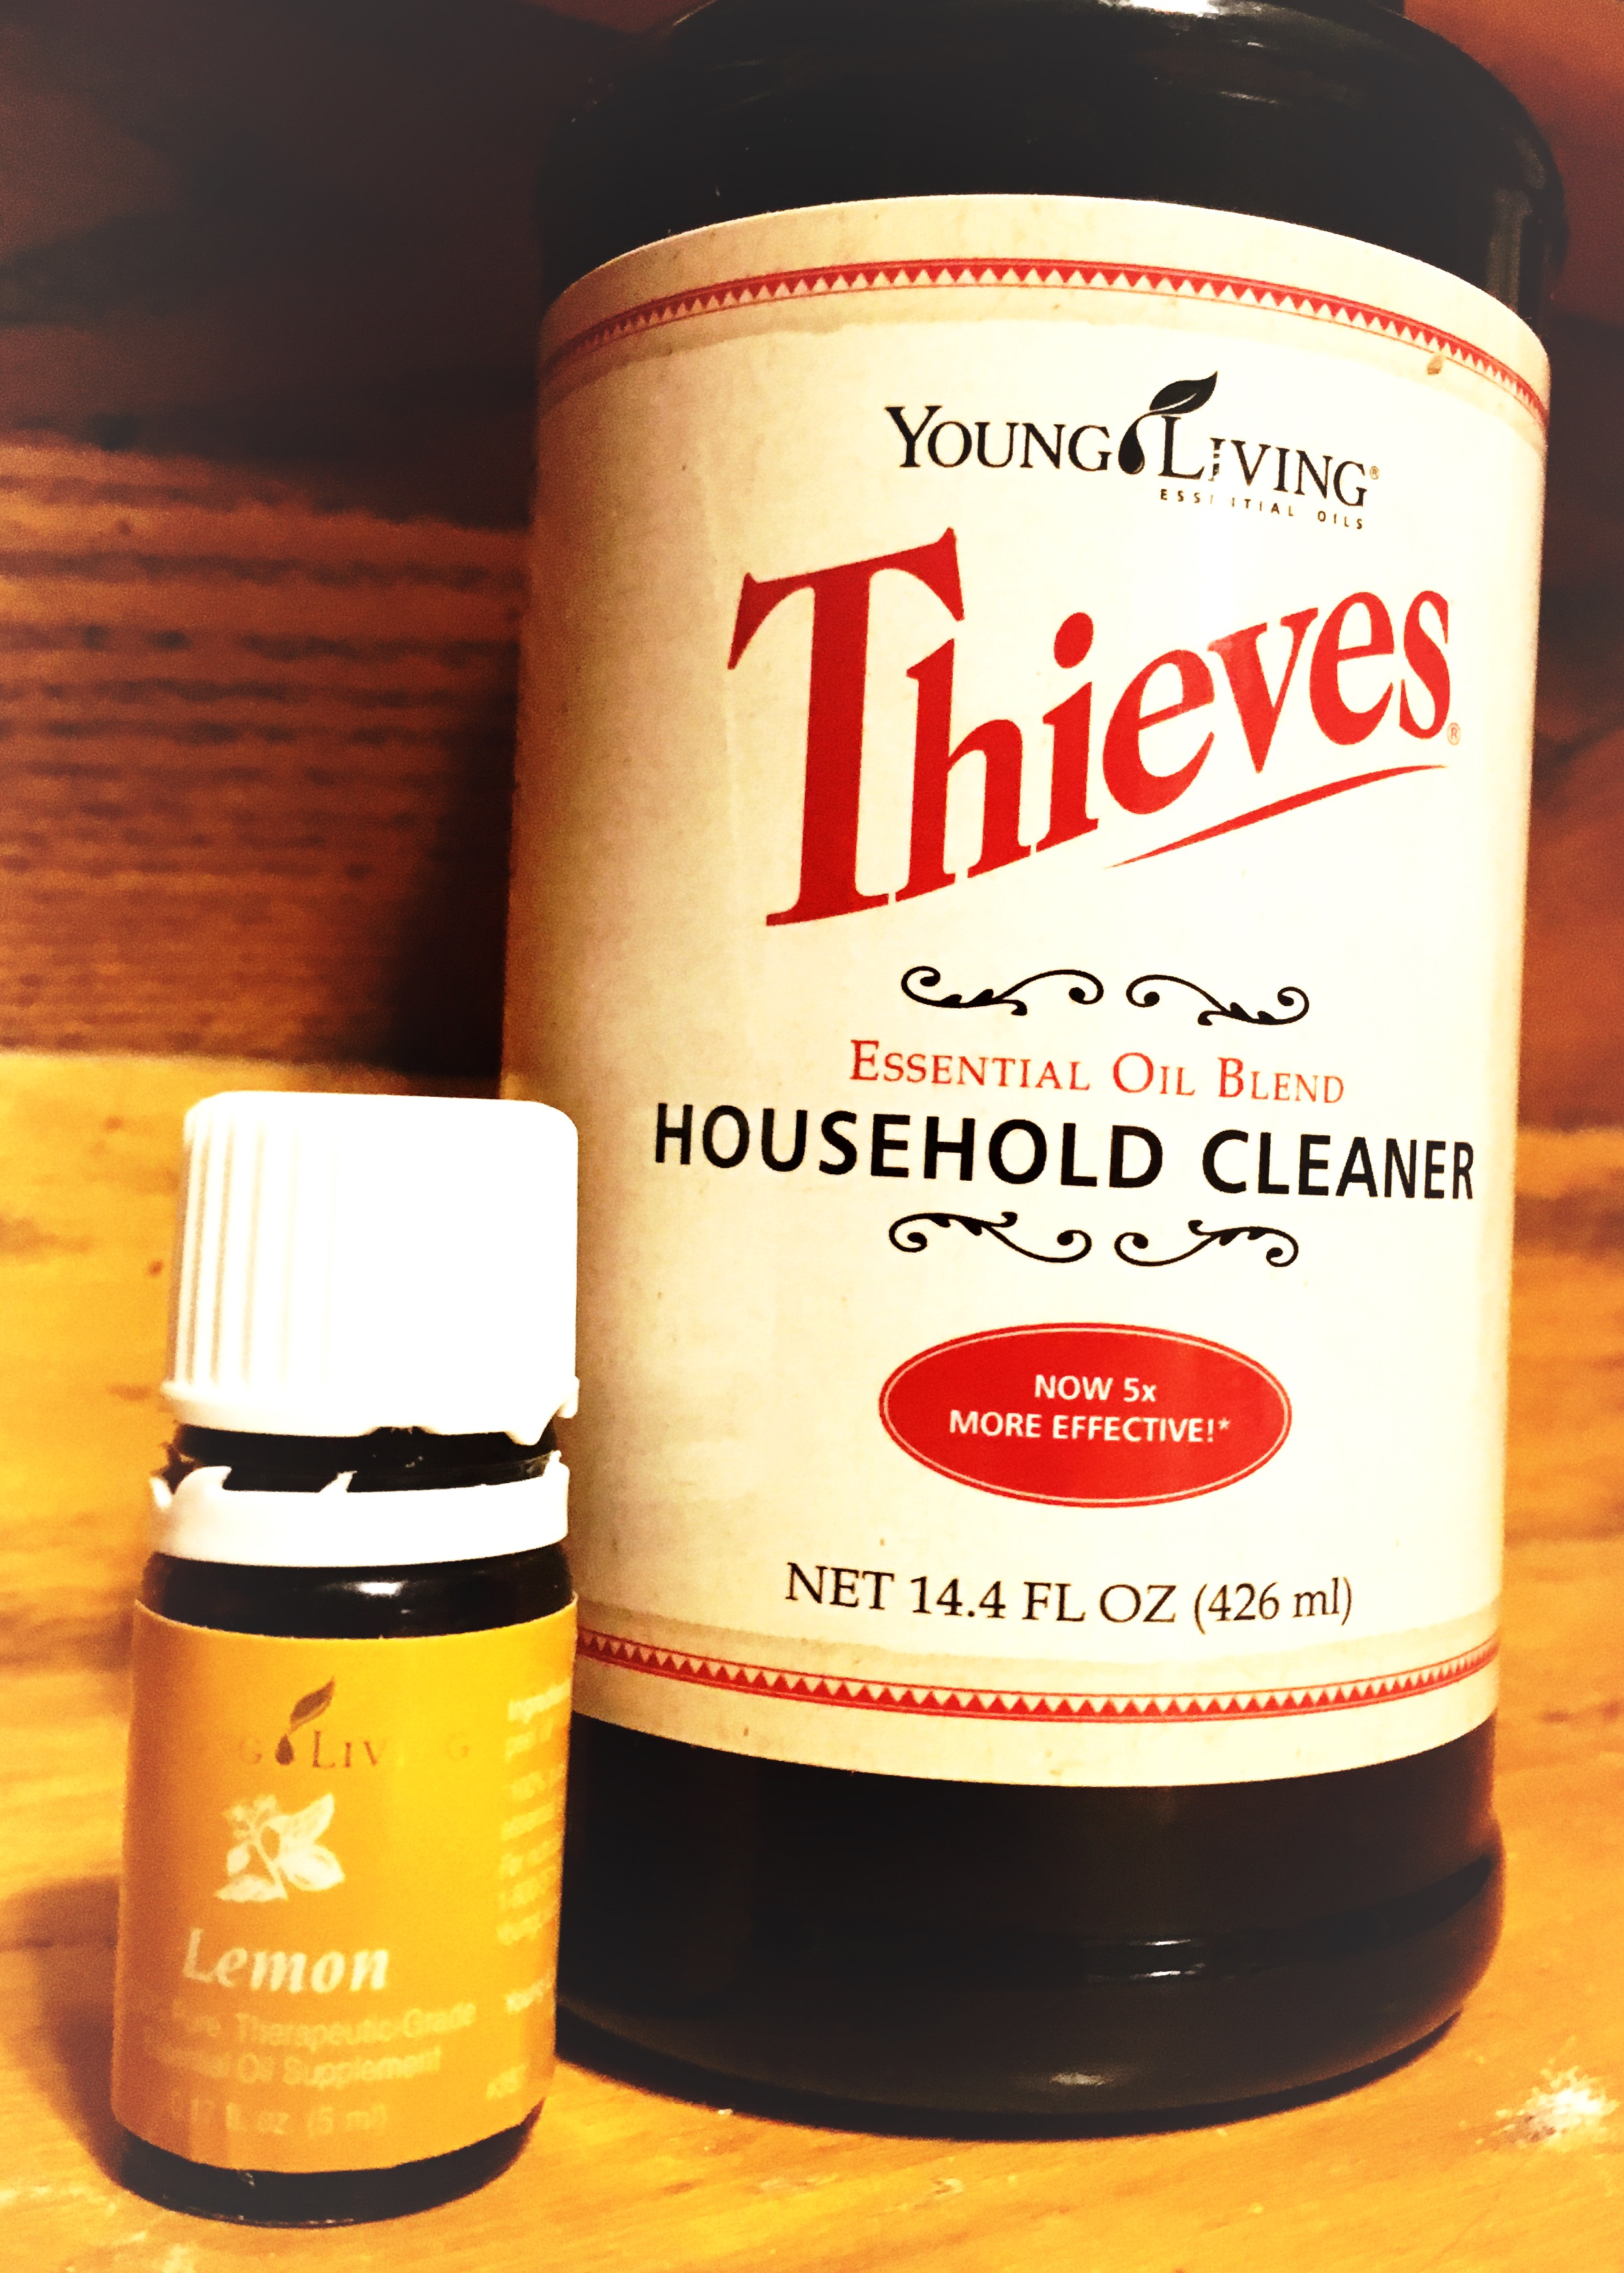 It's easy to achieve that a fresh, holiday-ready sparkle with the power of Thieves Household Cleaner + Lemon.